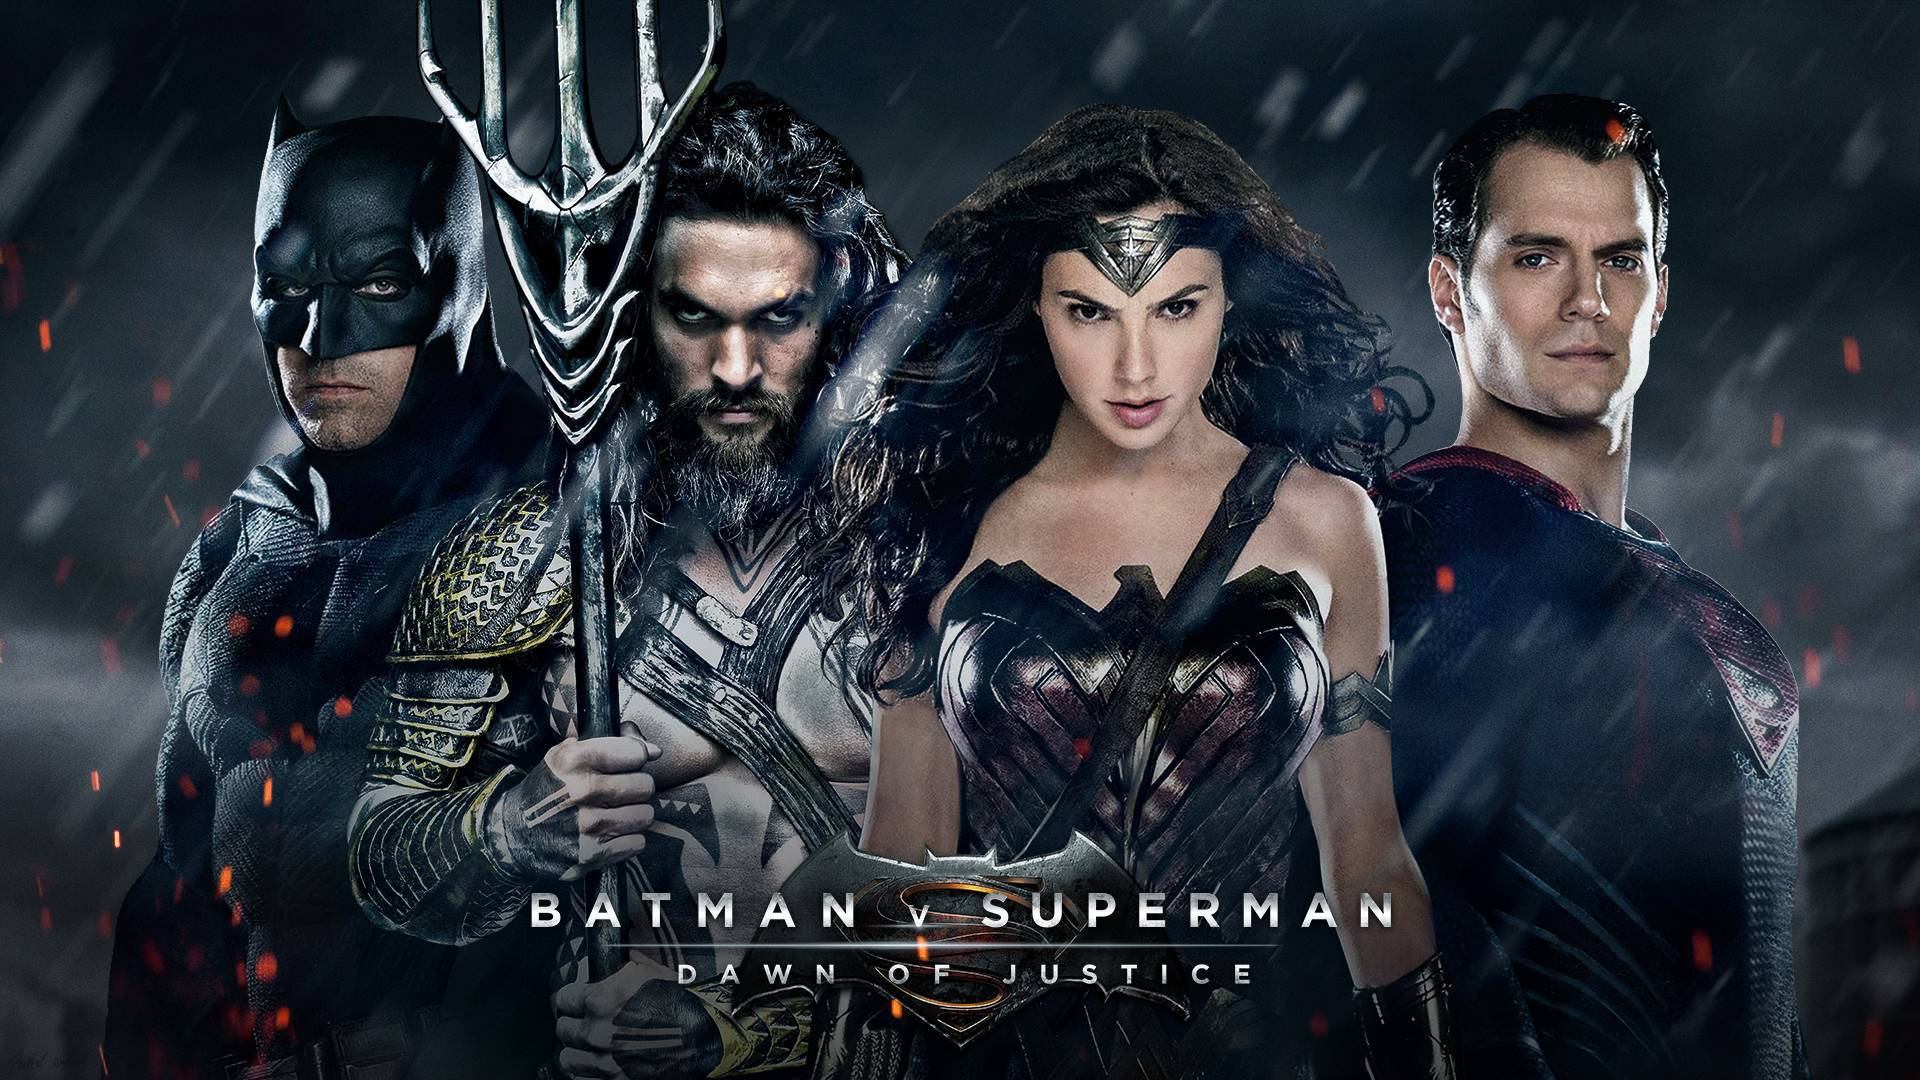 Batman Vs Superman: Dawn Of Justice HD pictures